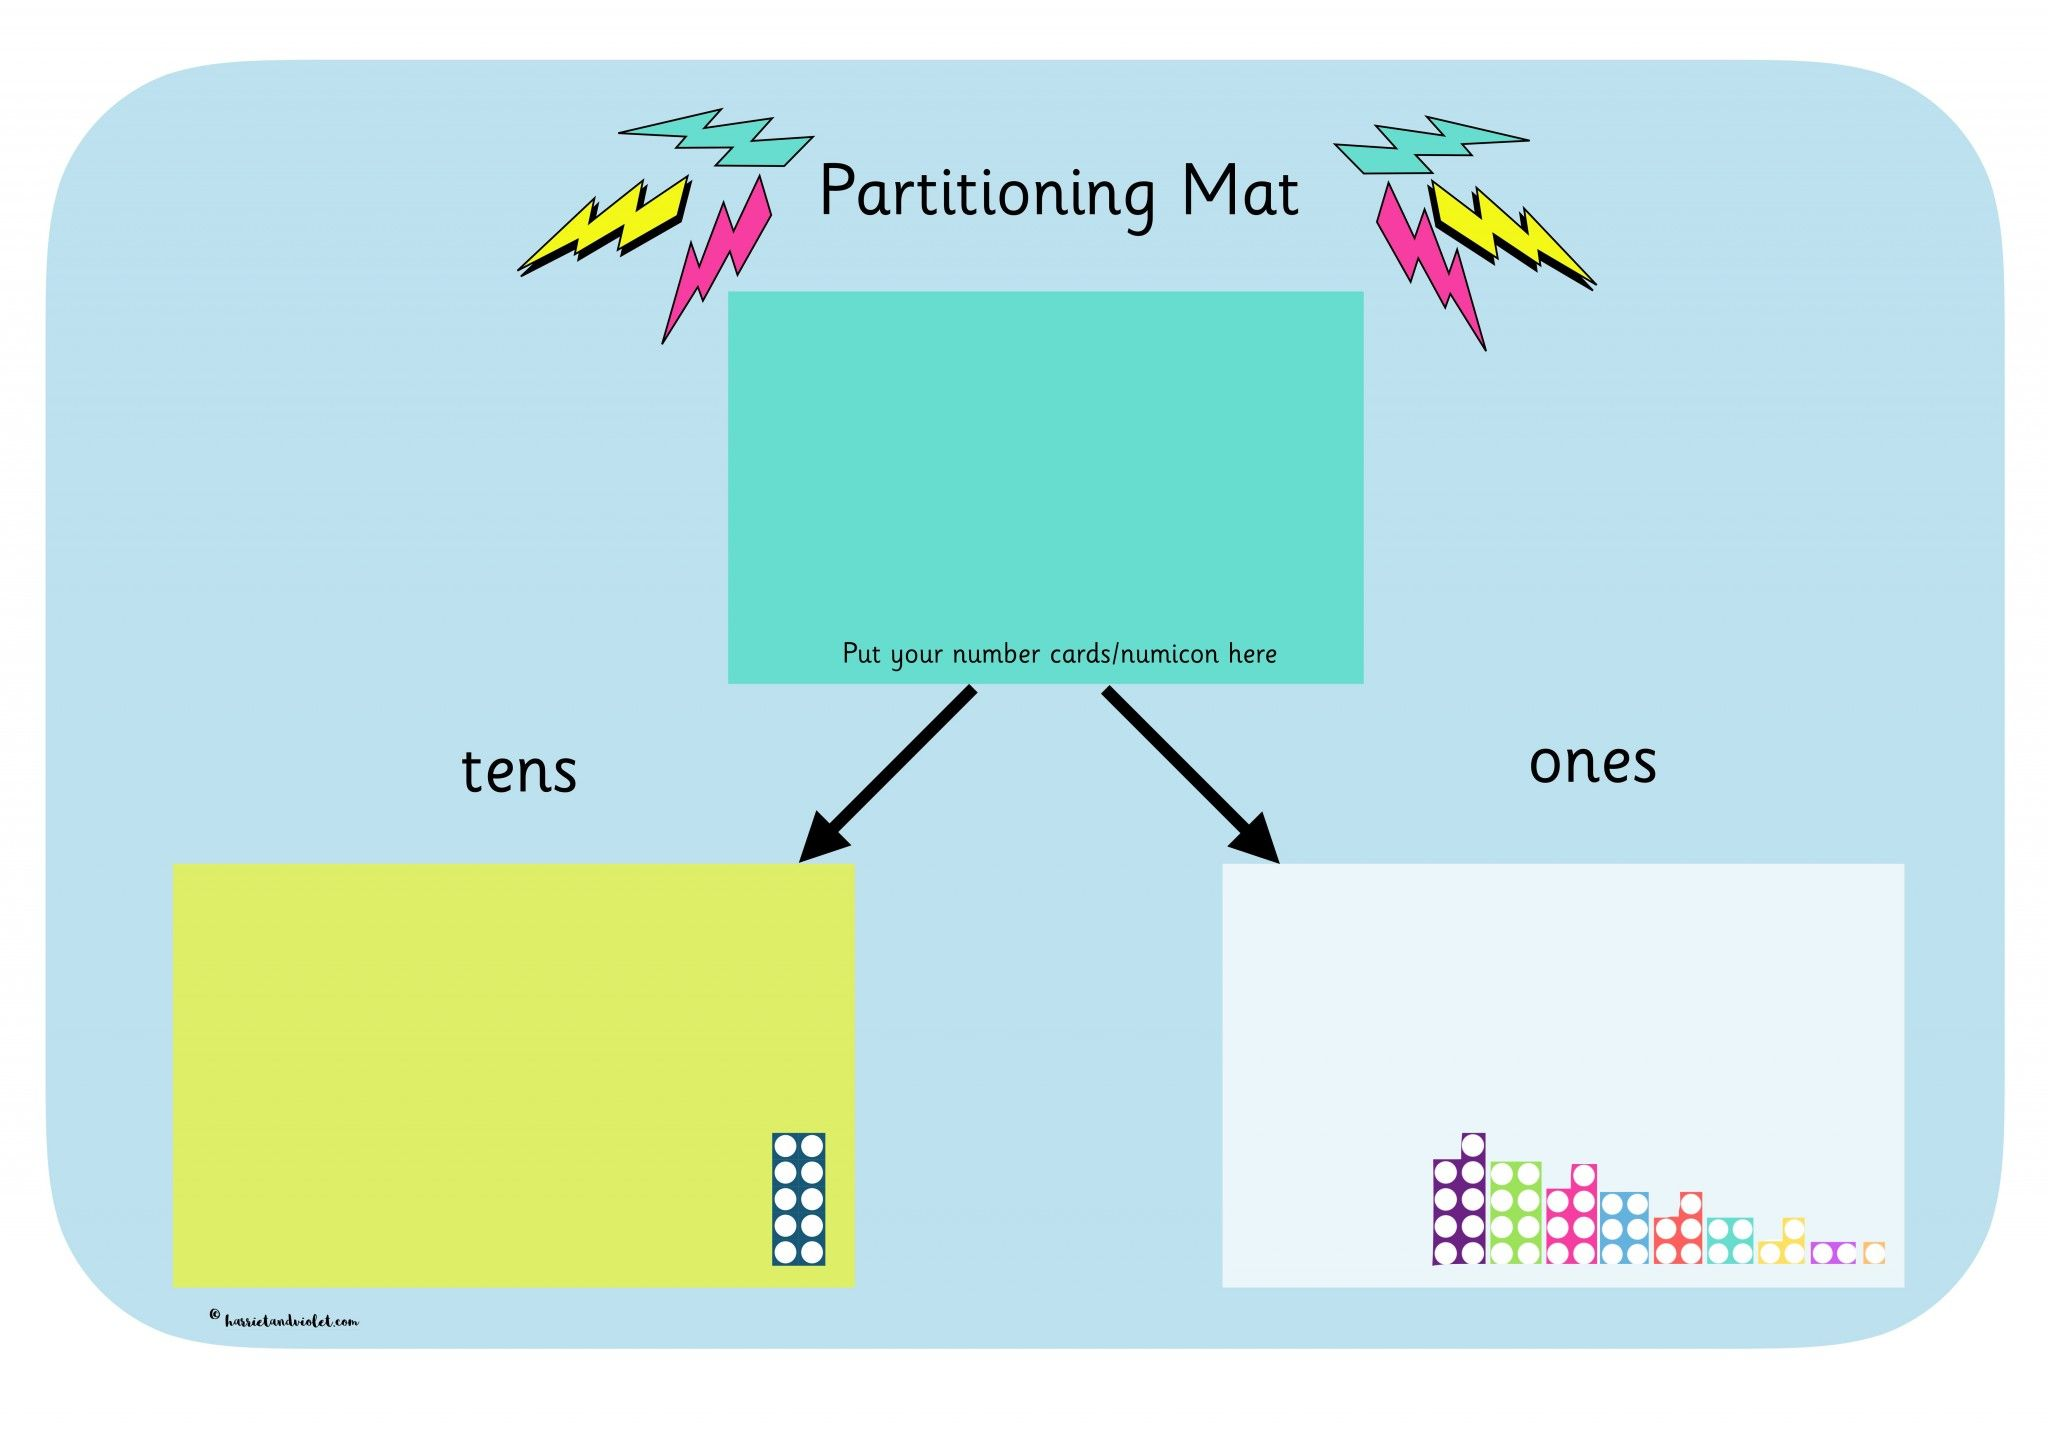 Partitioning Mat